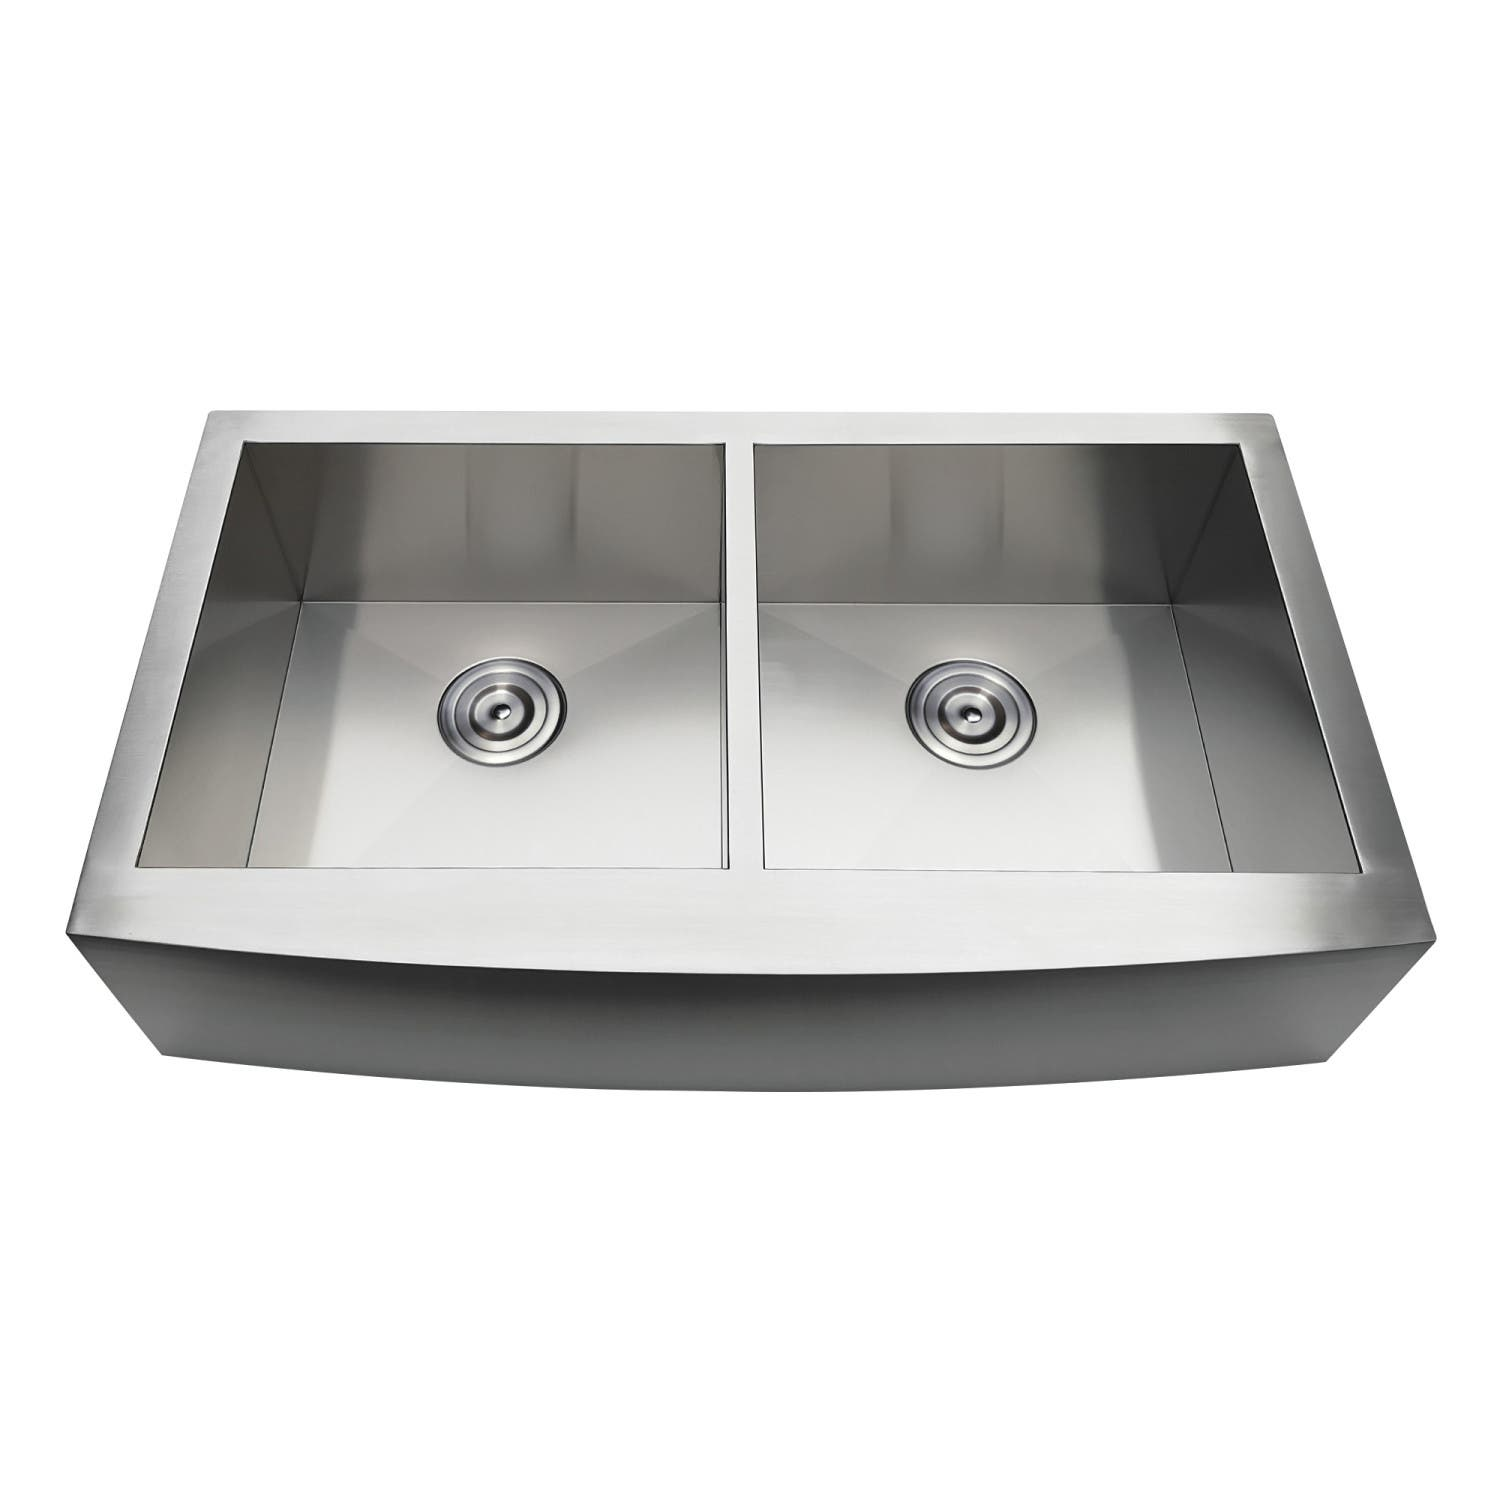 Gourmetier GKTDF36209 Drop-In Stainless Steel Double Bowl Farmhouse Kitchen  Sink